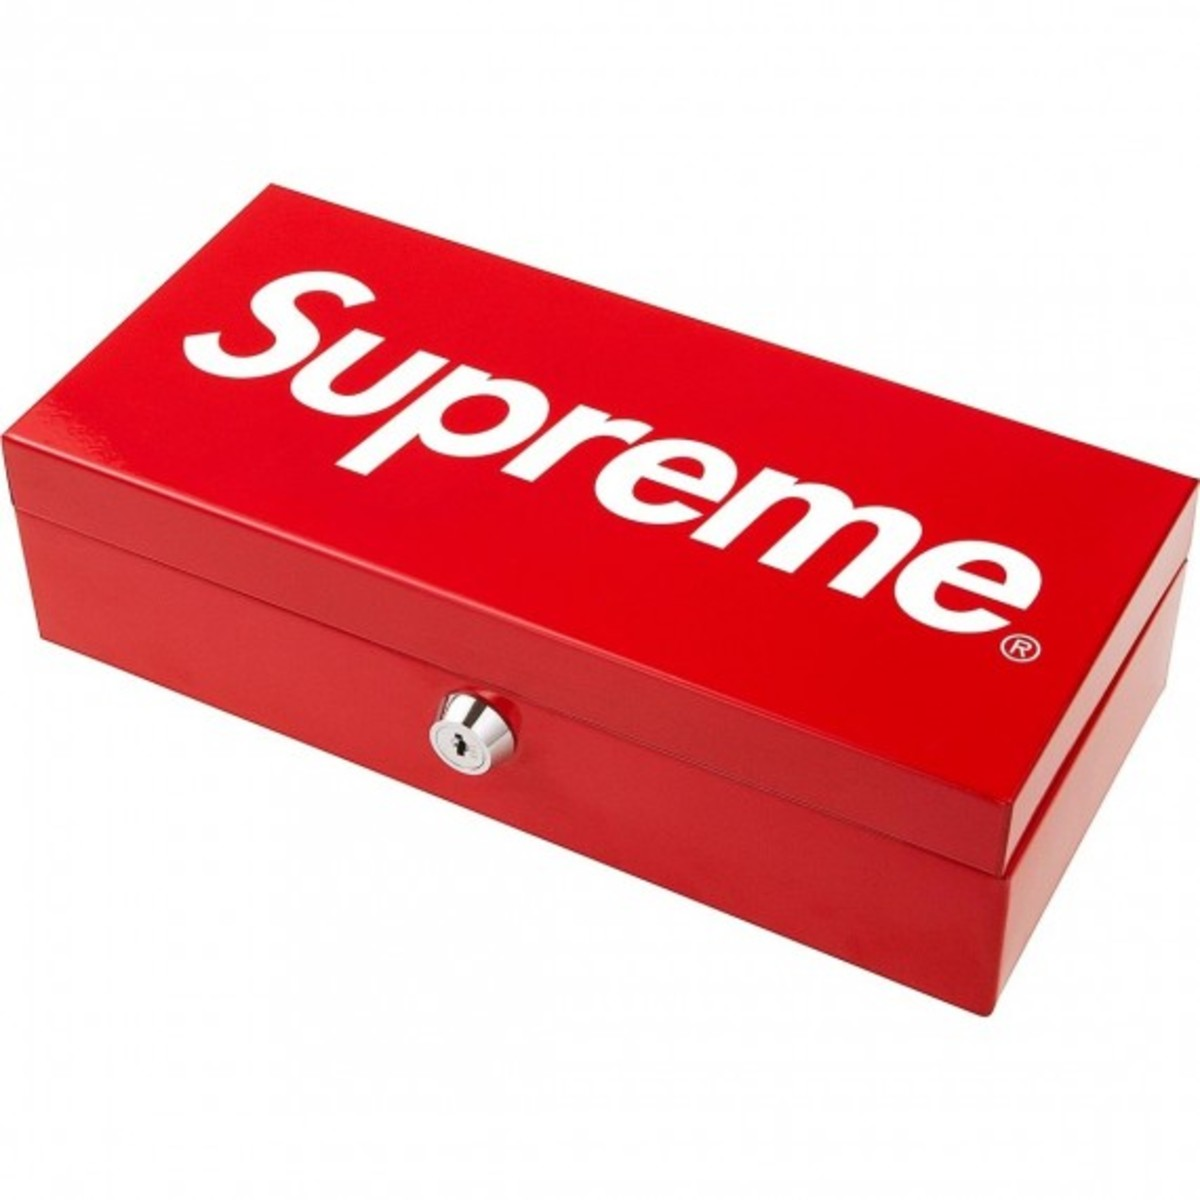 supreme-fall-winter-2011-collection-available-now-19